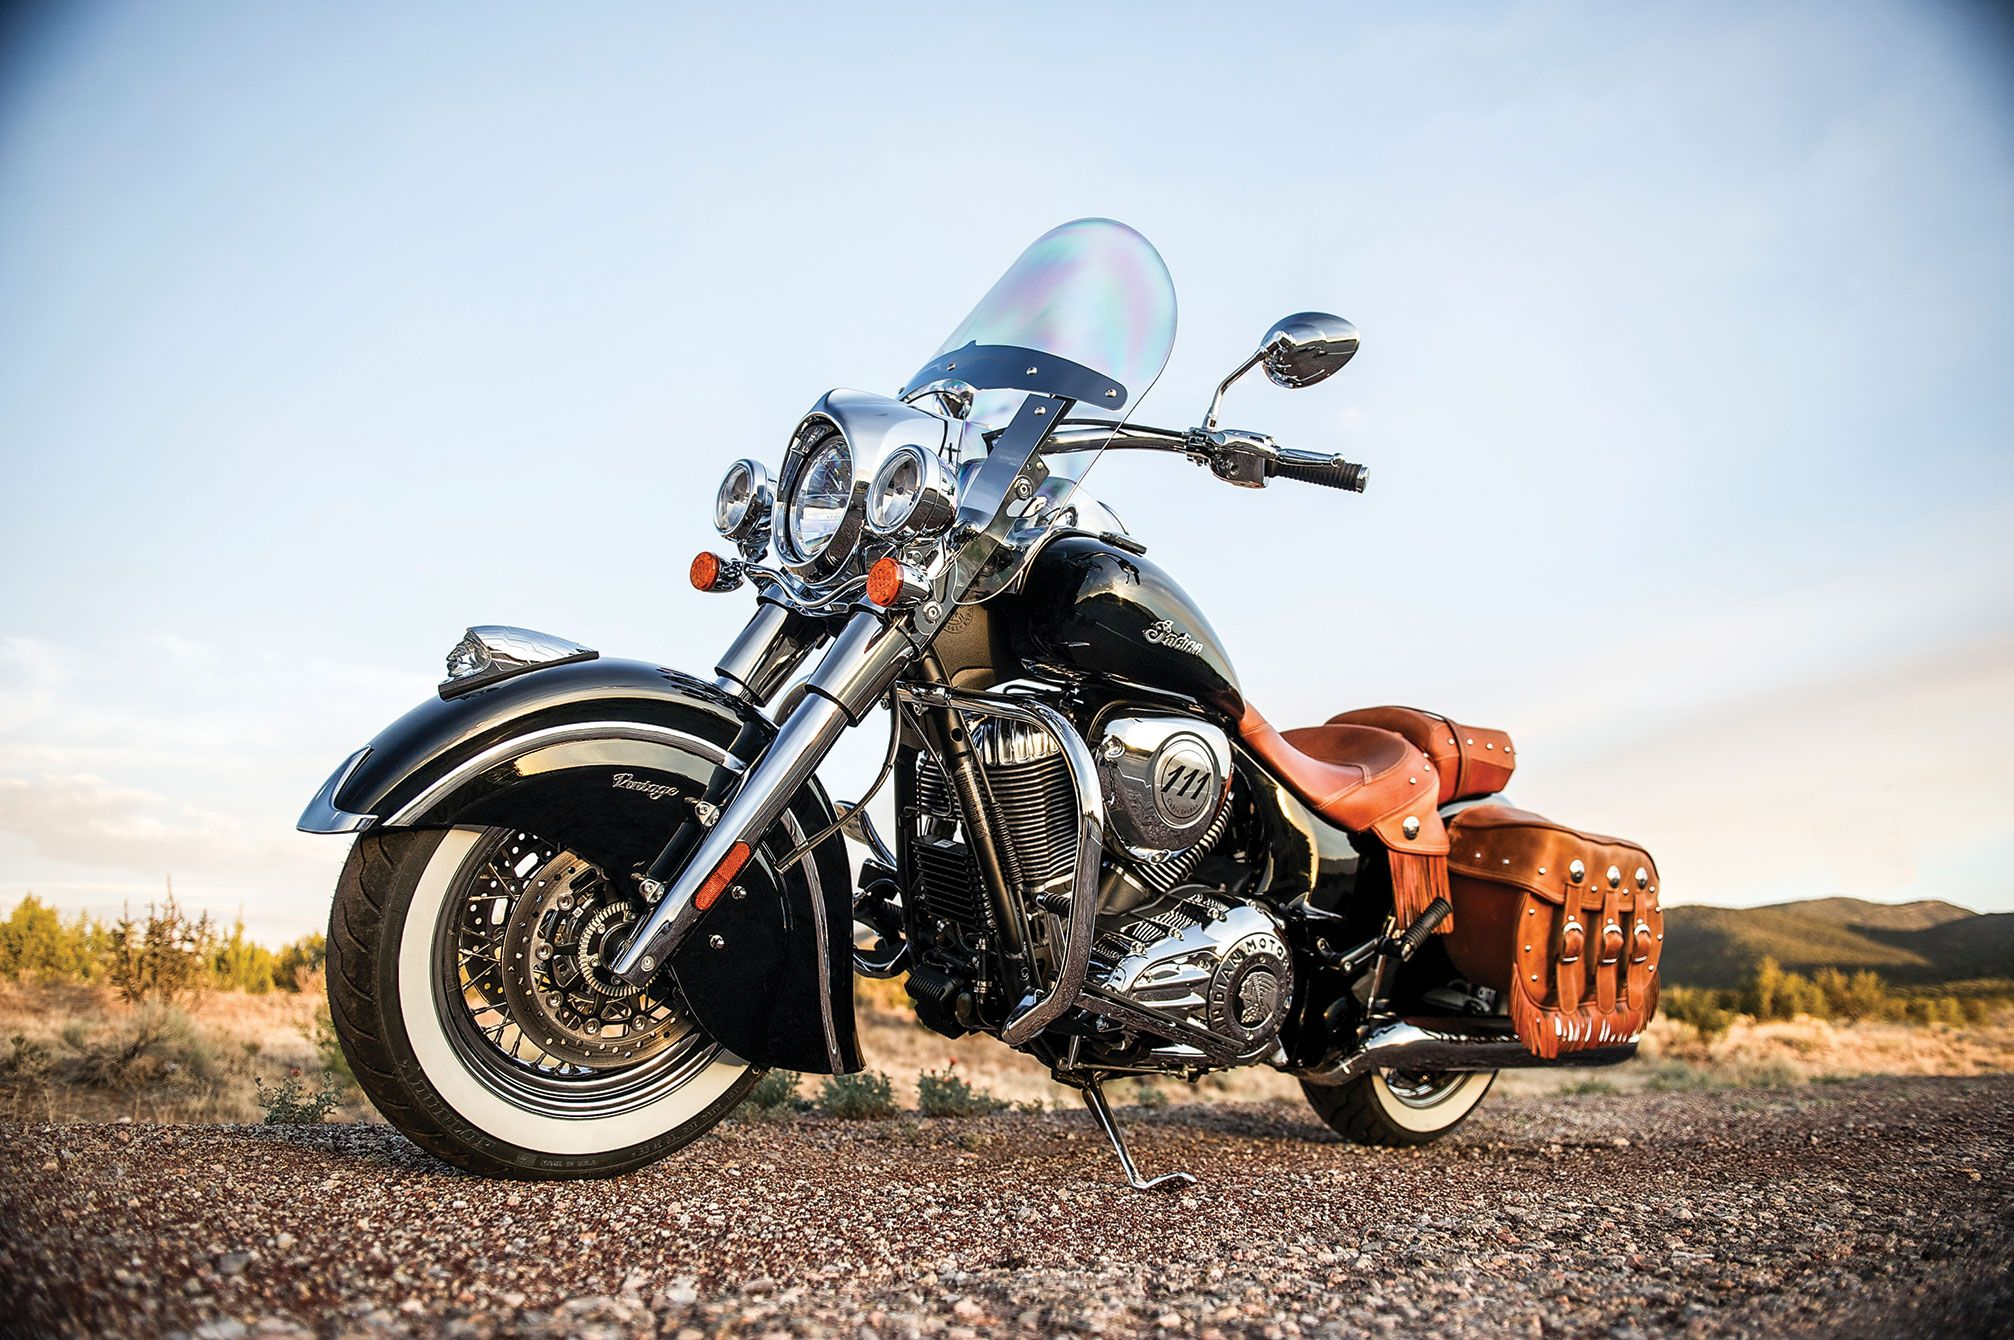 Indian Chief Motorcycles Hd Background Wallpaper 16 HD Wallpapers 2014x1340